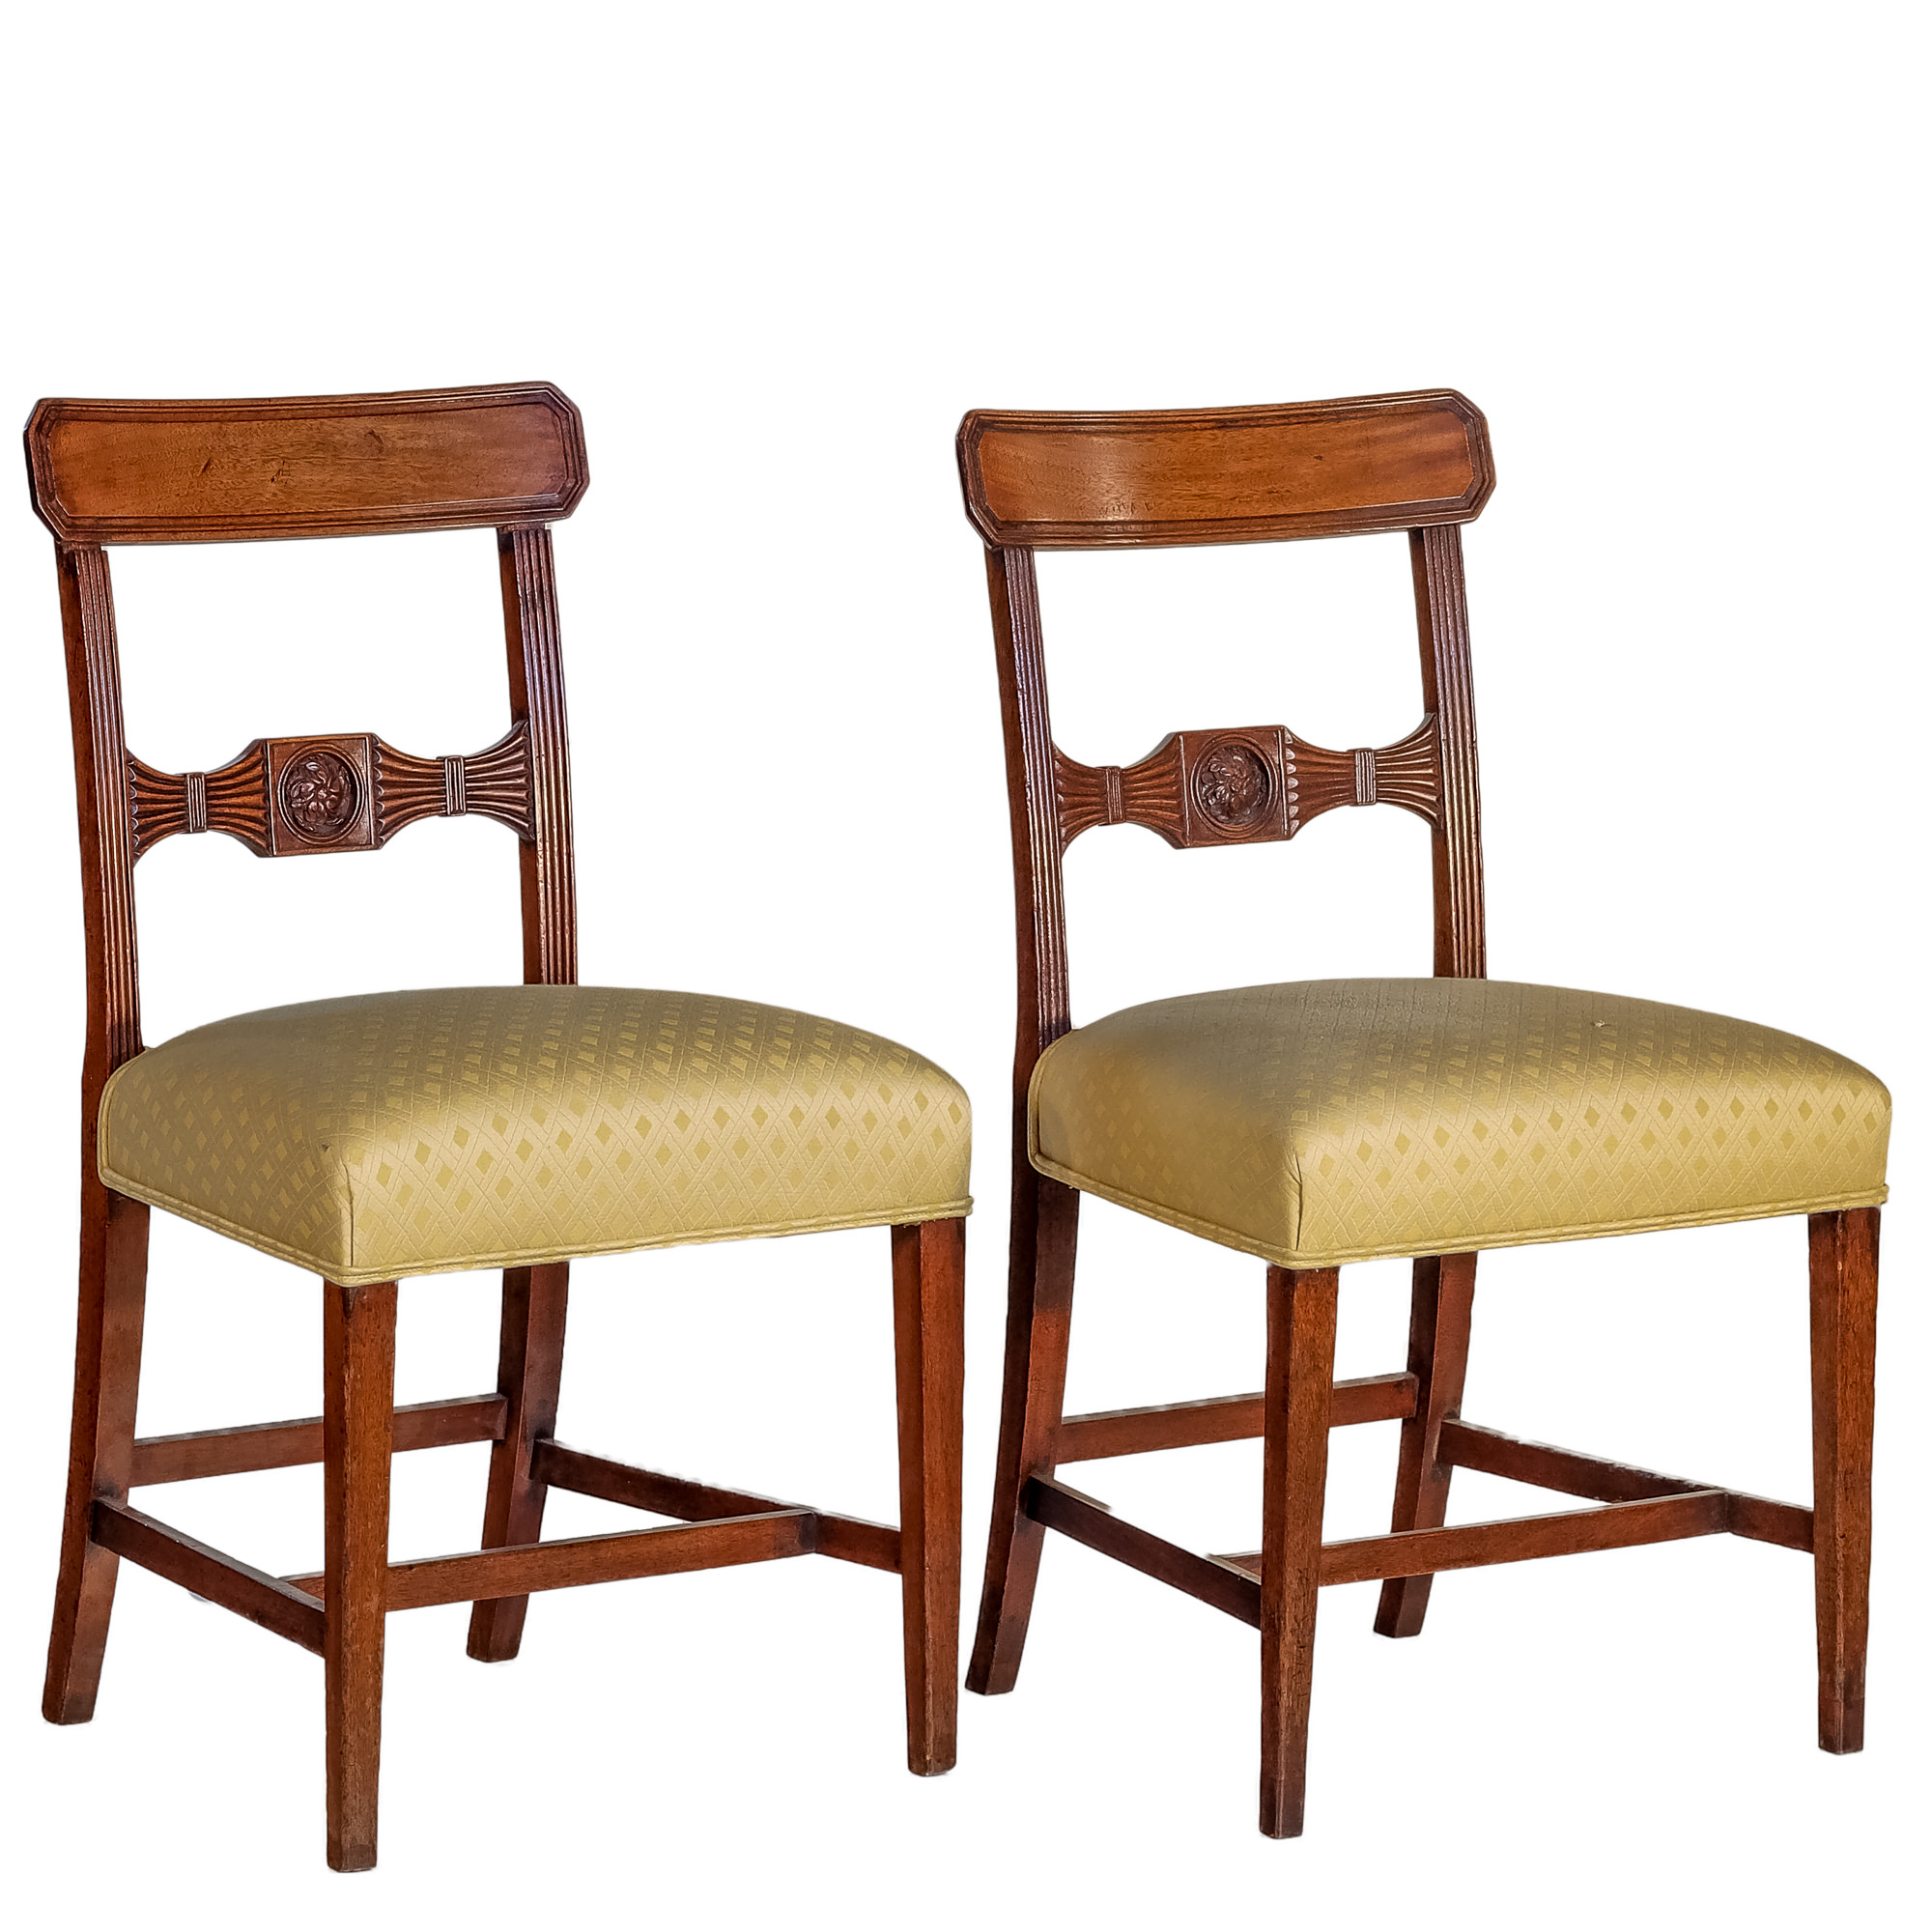 'A Pair of George III Sheraton Carved Mahogany Dining Chairs Circa 1800'